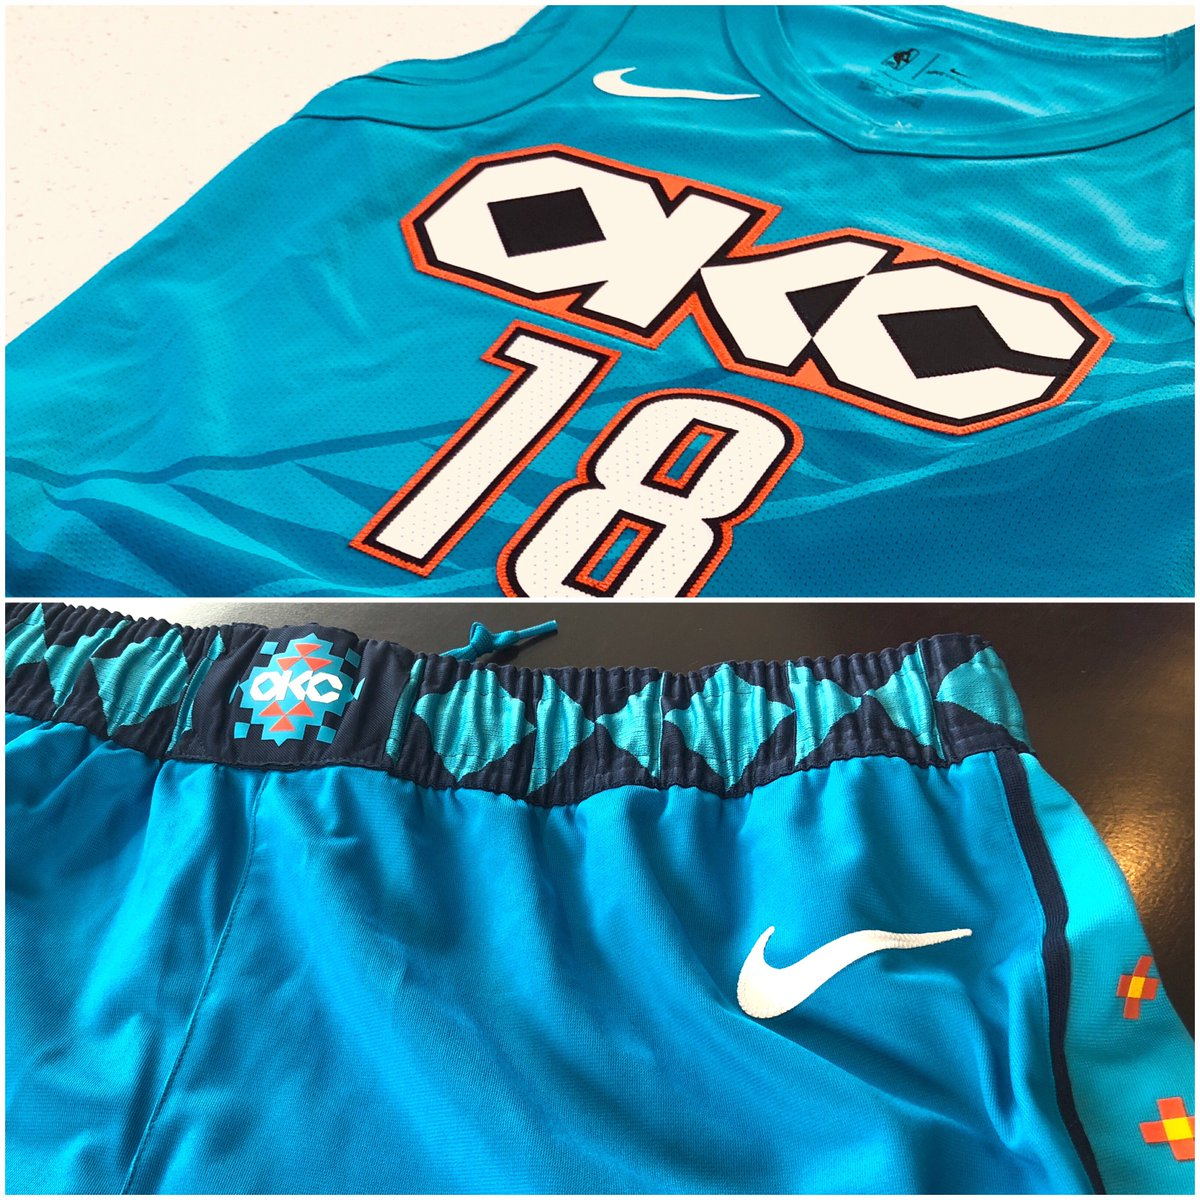 sports shoes 853d1 f0385 NBA 2K19 Jerseys & Courts Creations - Page 8 - Operation ...